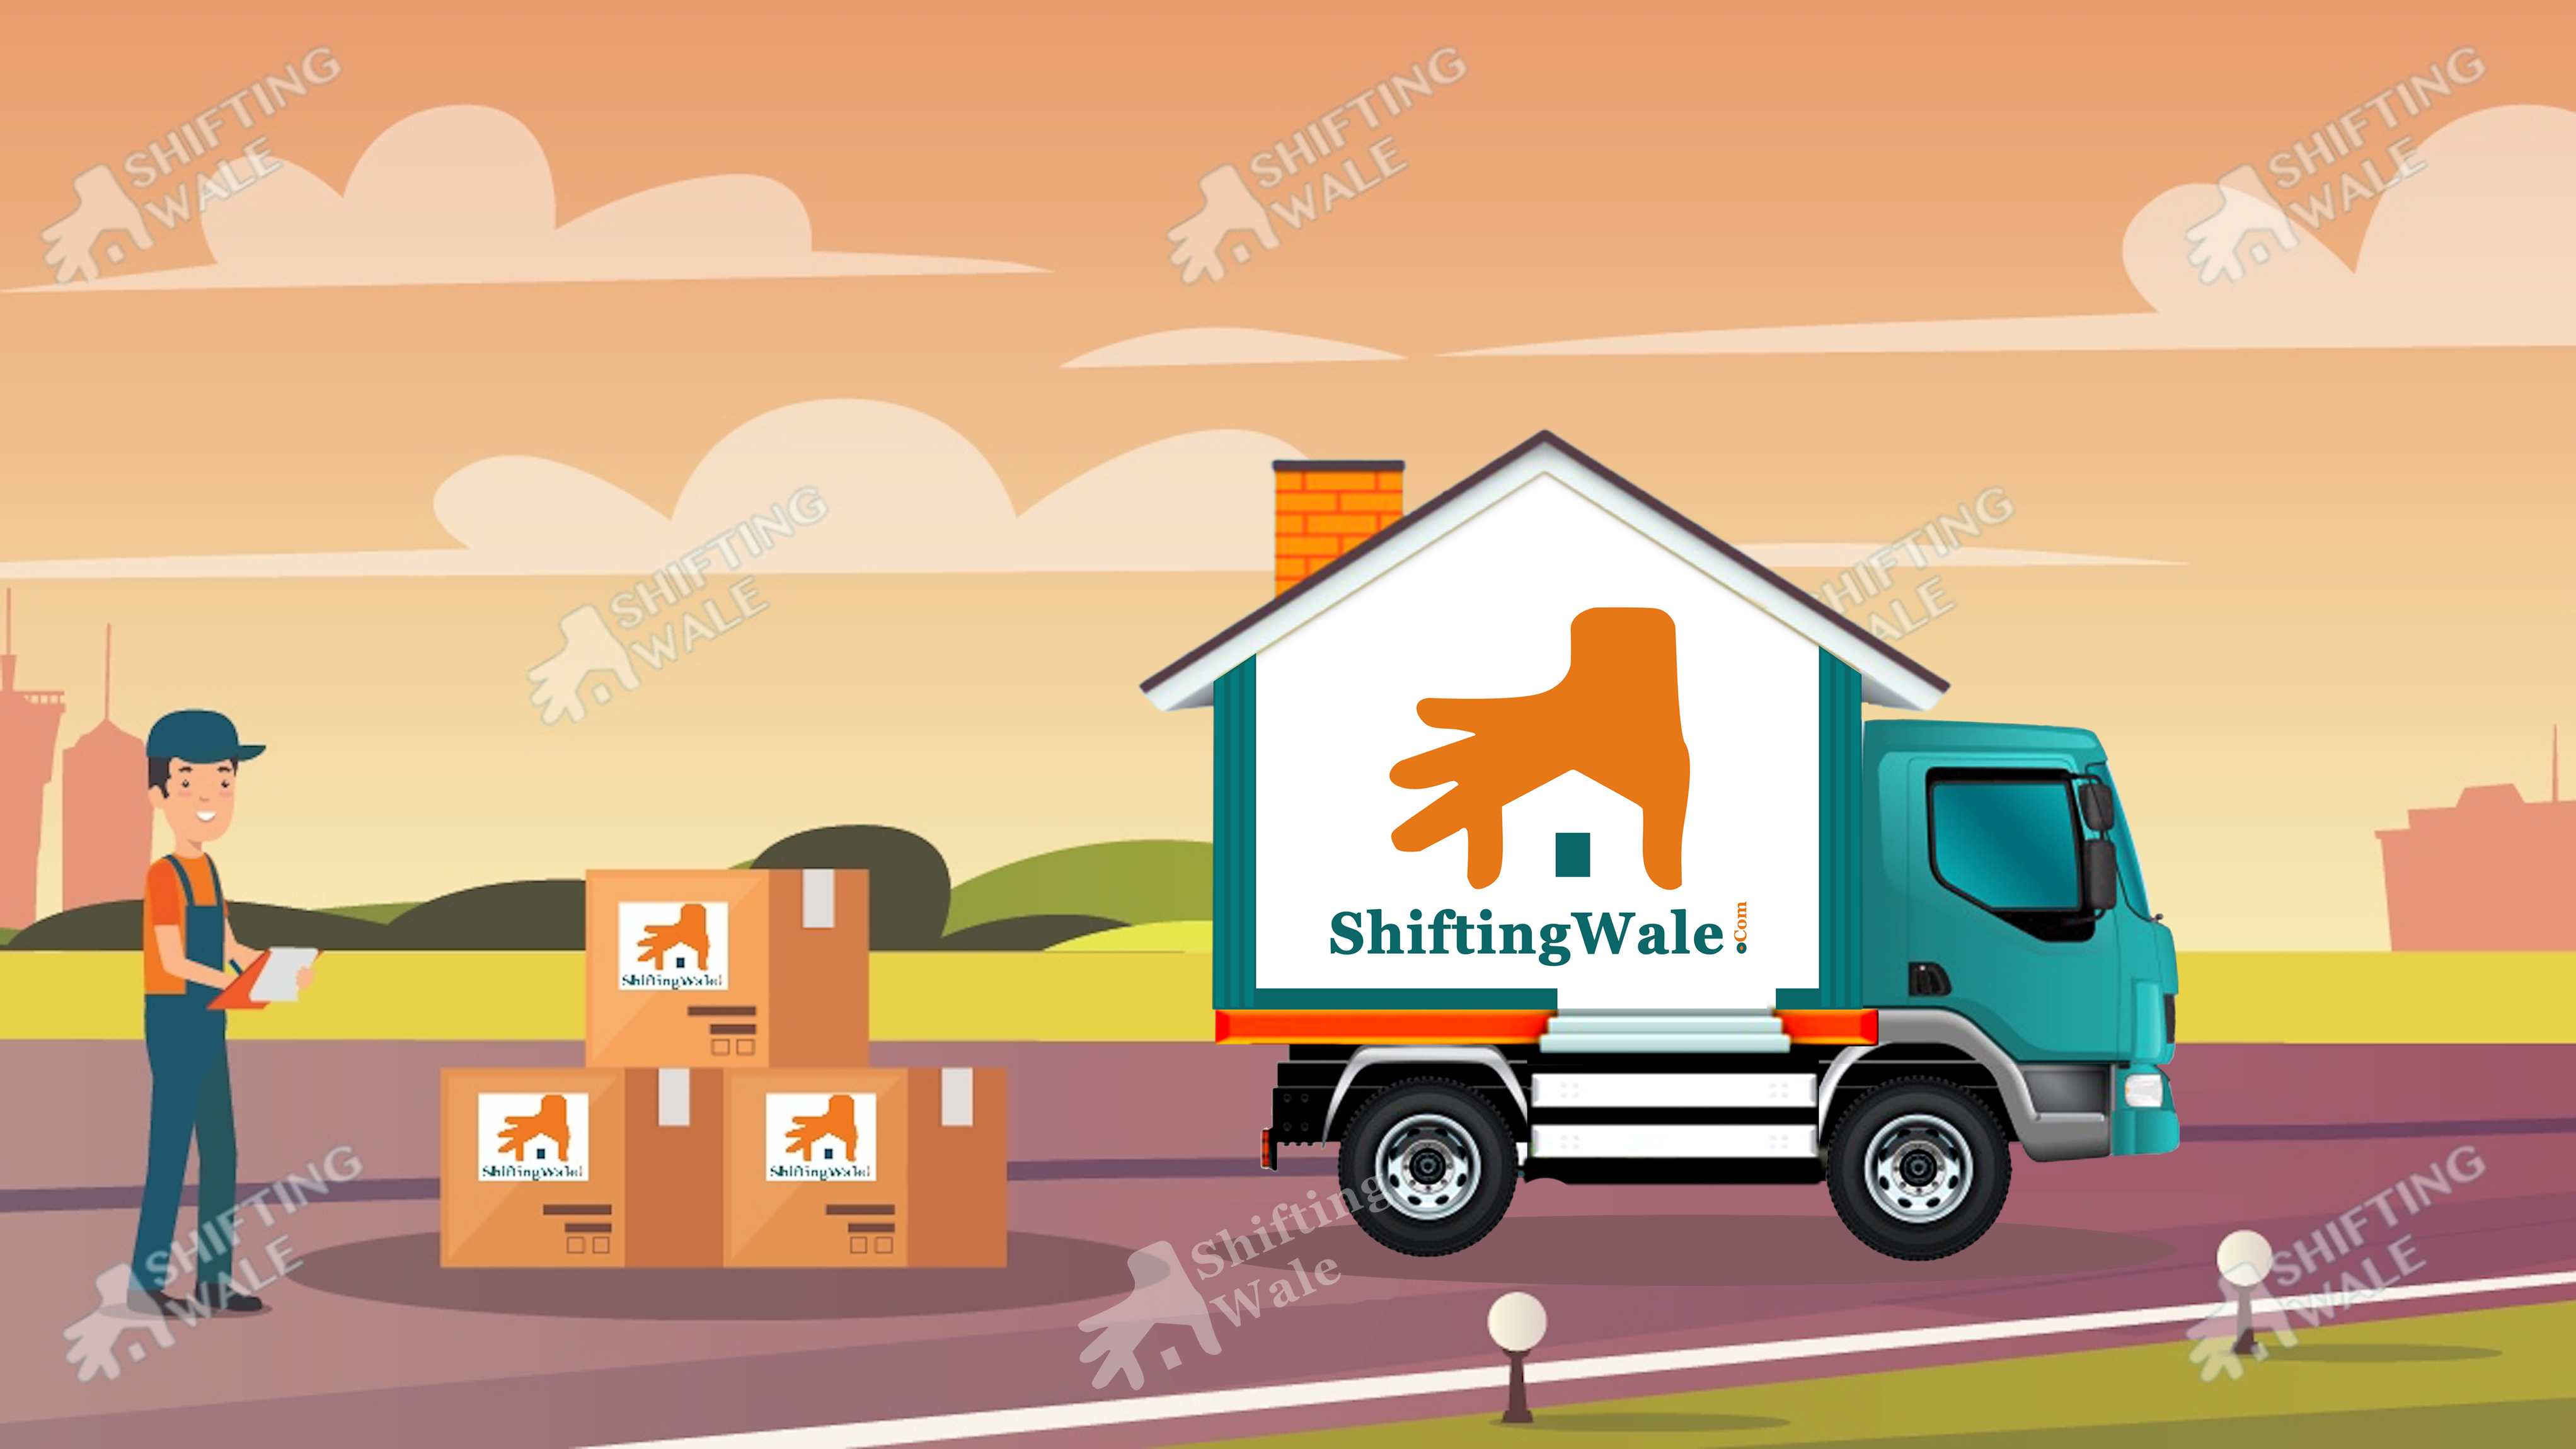 Want Packers and Movers for Household Goods Car from Delhi Gurugram Noida Ghaziabad to Kochi Thiruvananthapuram